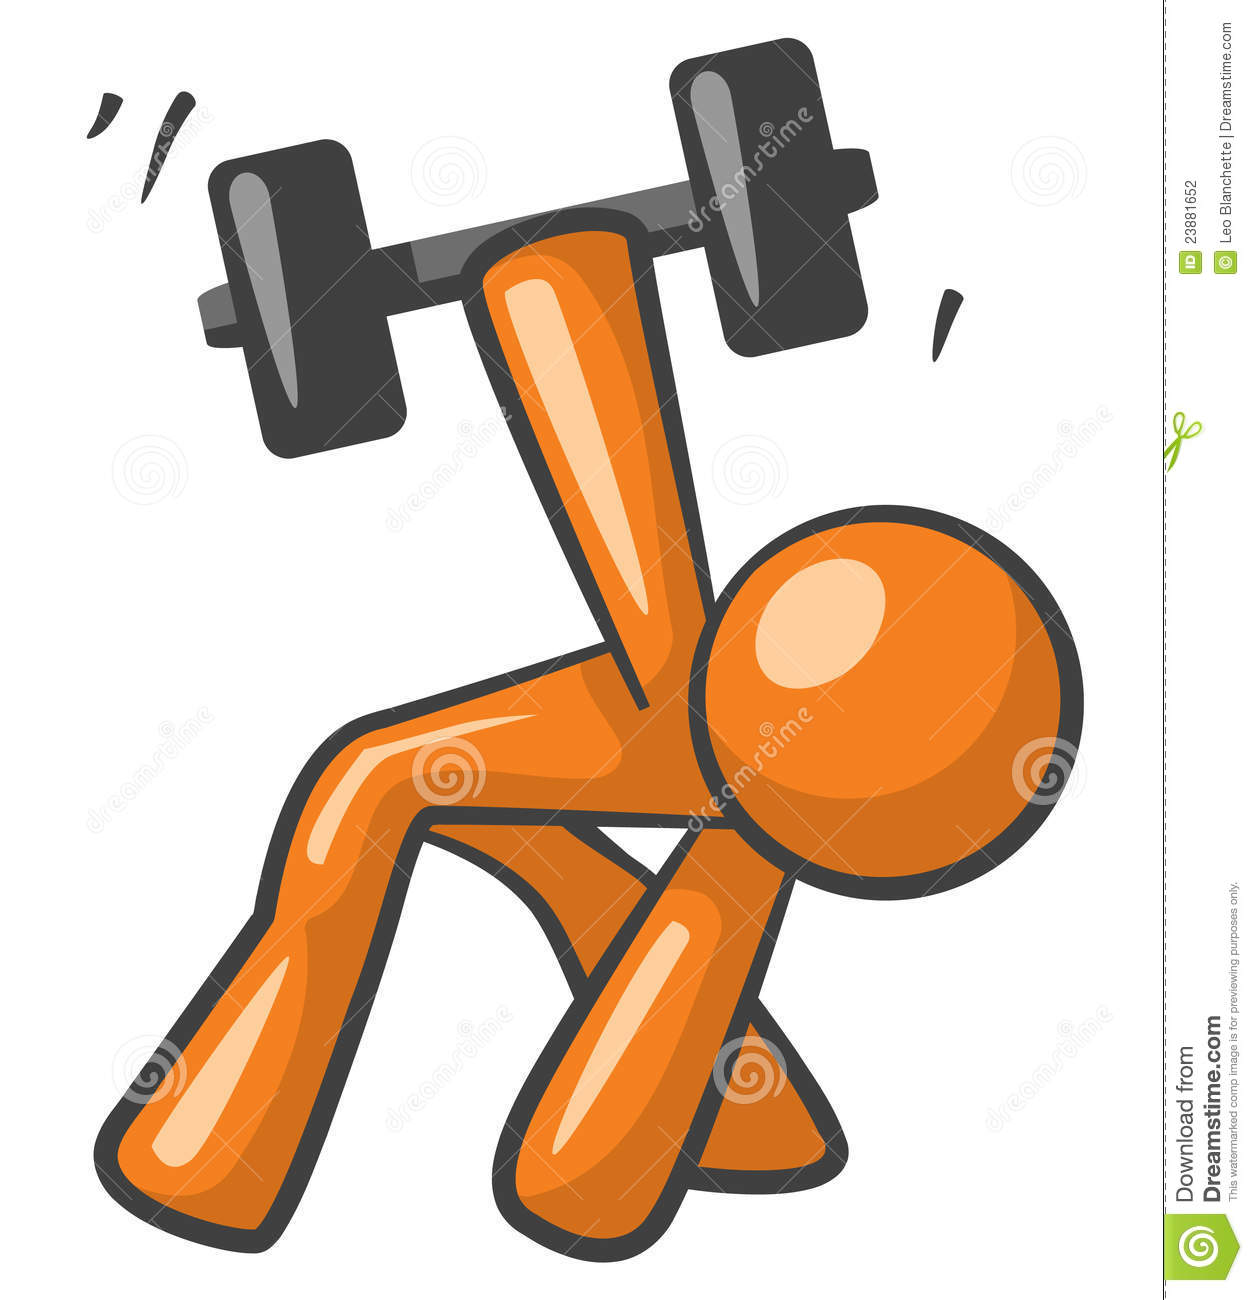 Working Out: Orange Man Working Out With Dumb Bells Stock Illustration